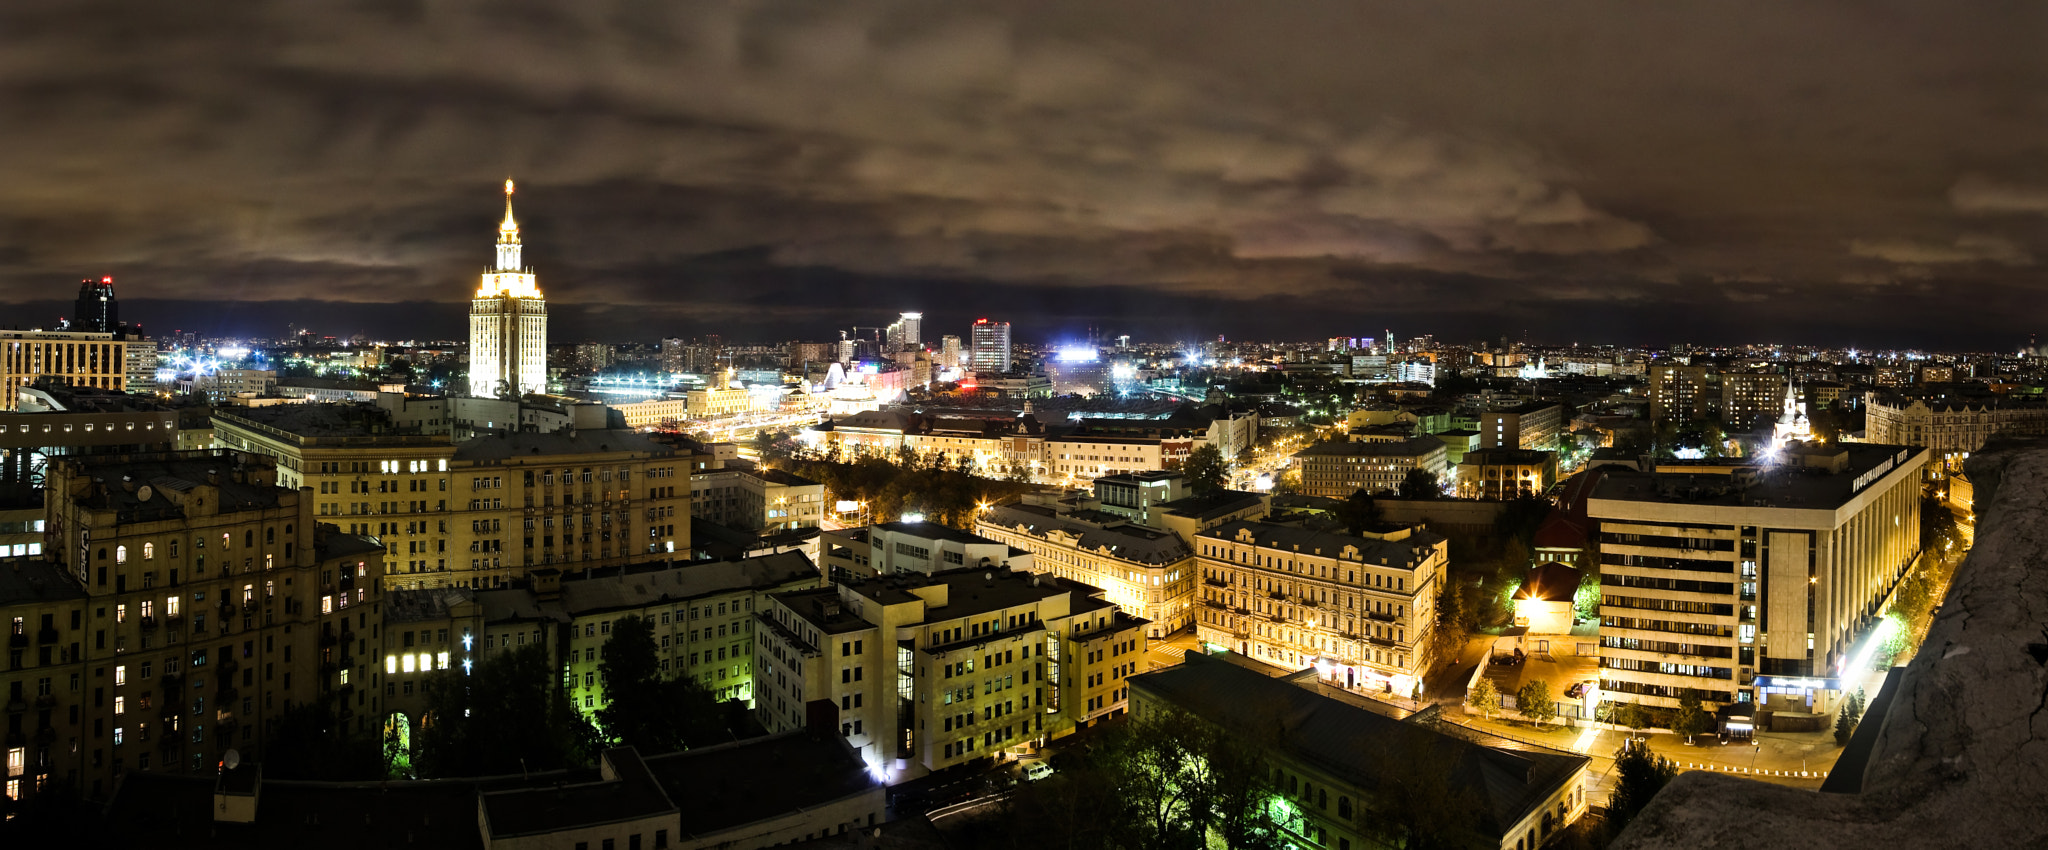 Photograph Moscow city lights by Rinat Fattahov on 500px